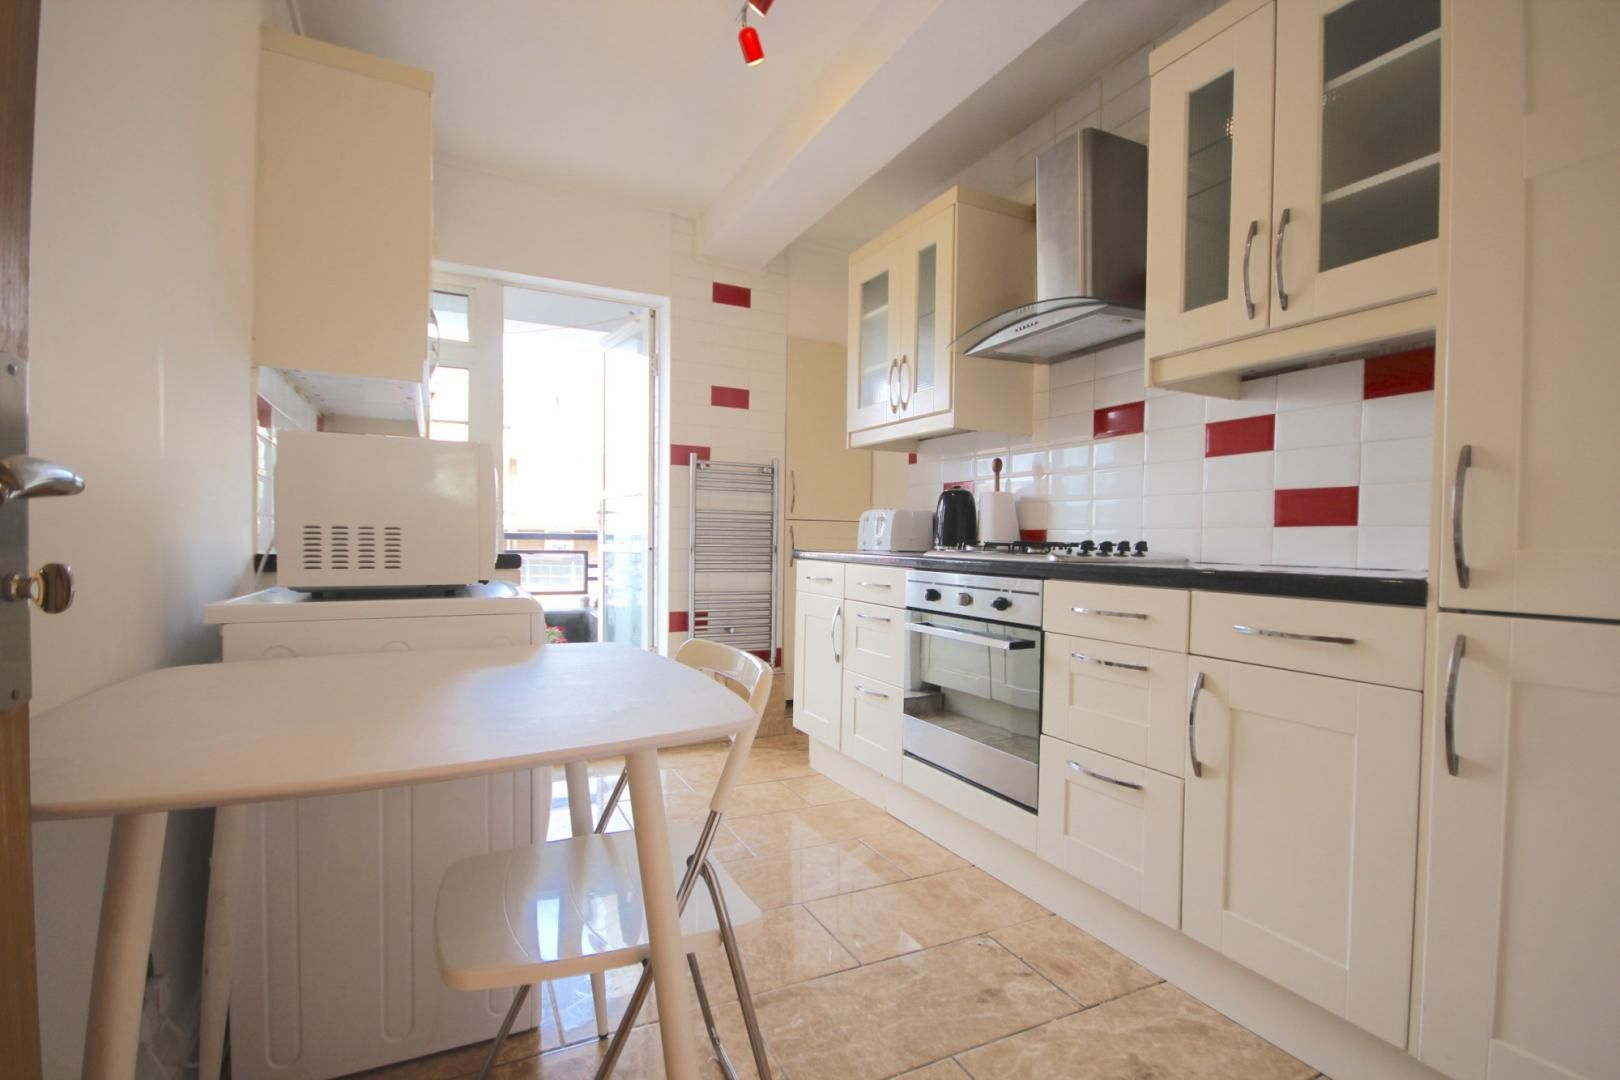 4 bed flat to rent in Church Street Estate, NW8